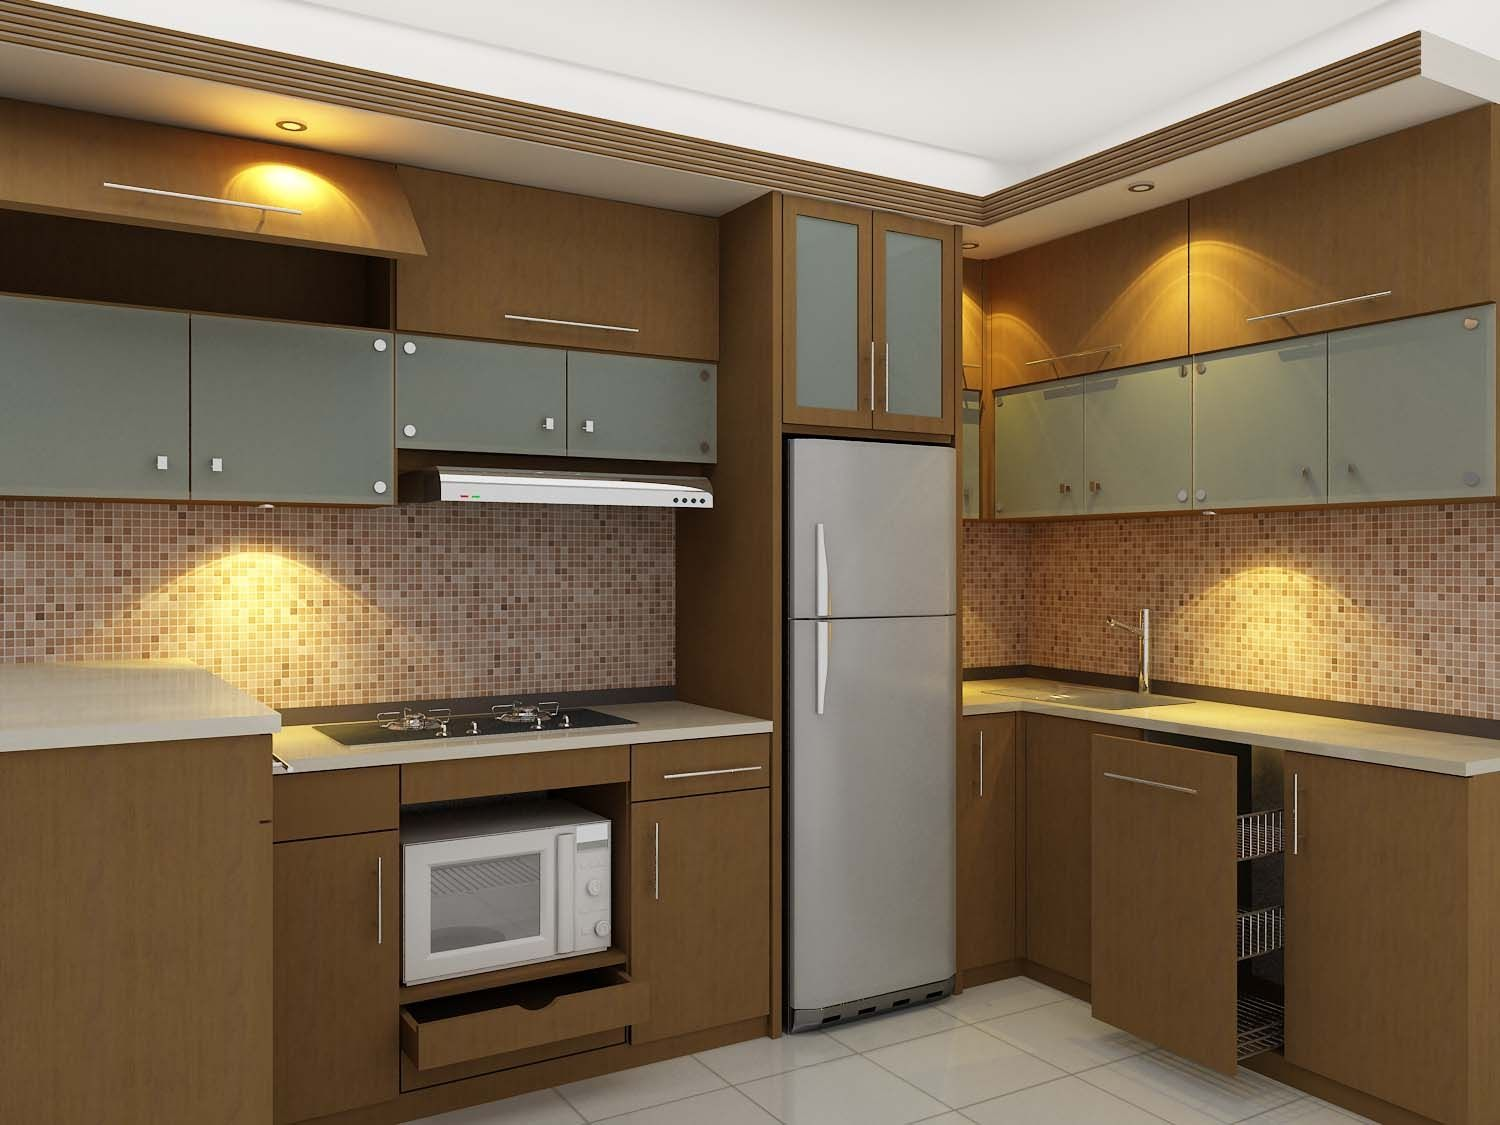 Desain kitchen set minimalis rumah pinterest kitchen for Kitchen kitchen set